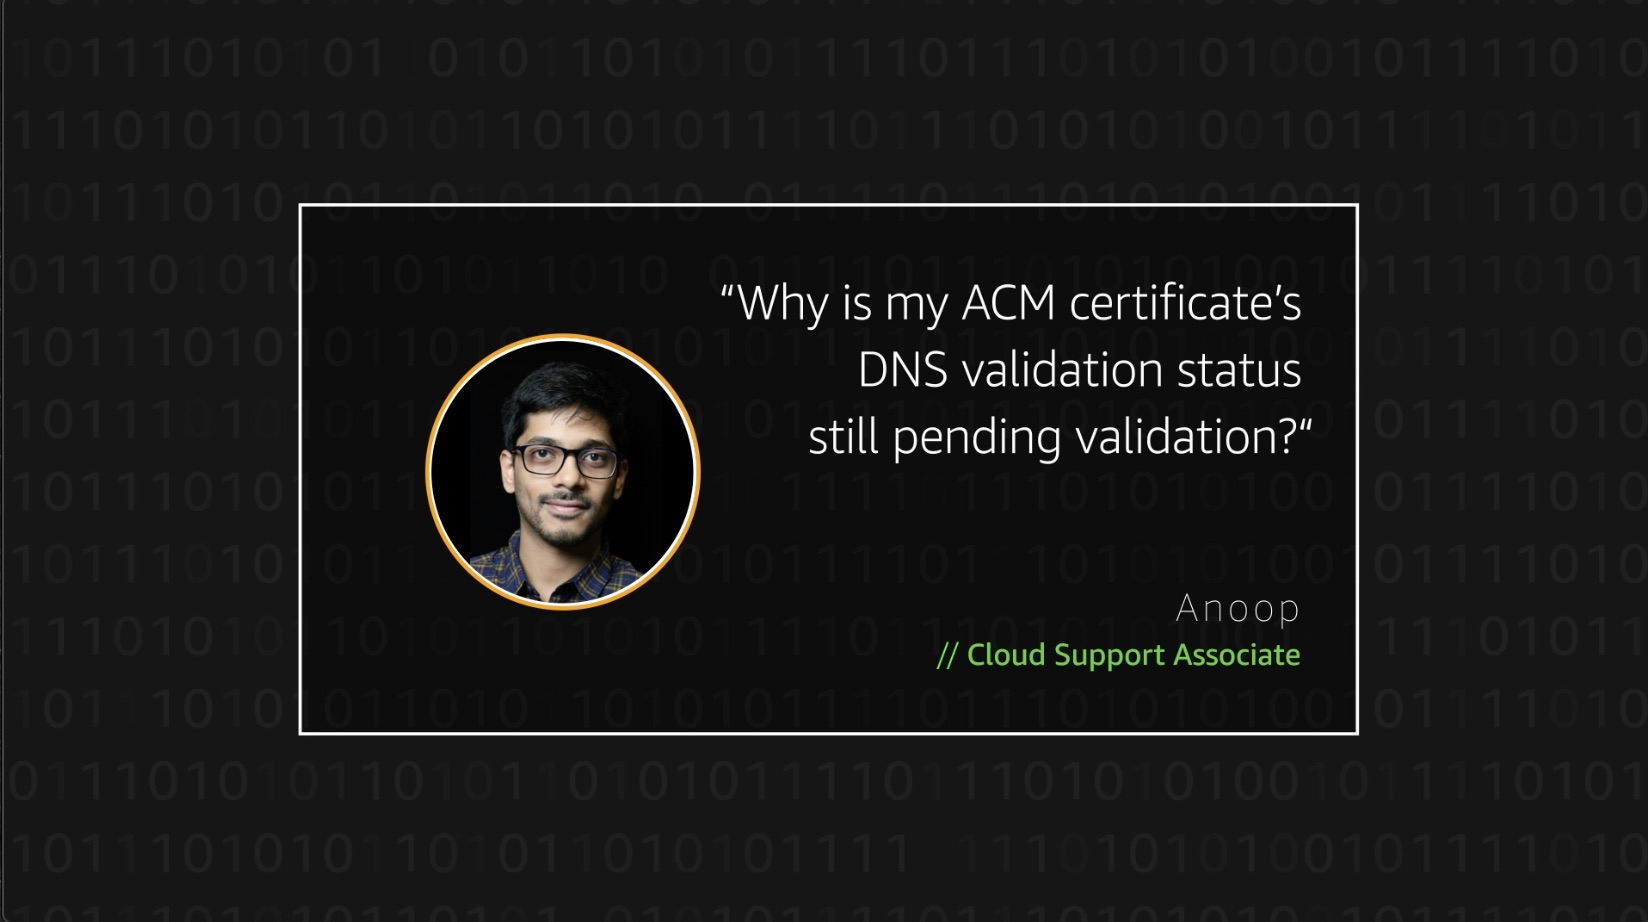 Watch Anoop's video to learn more